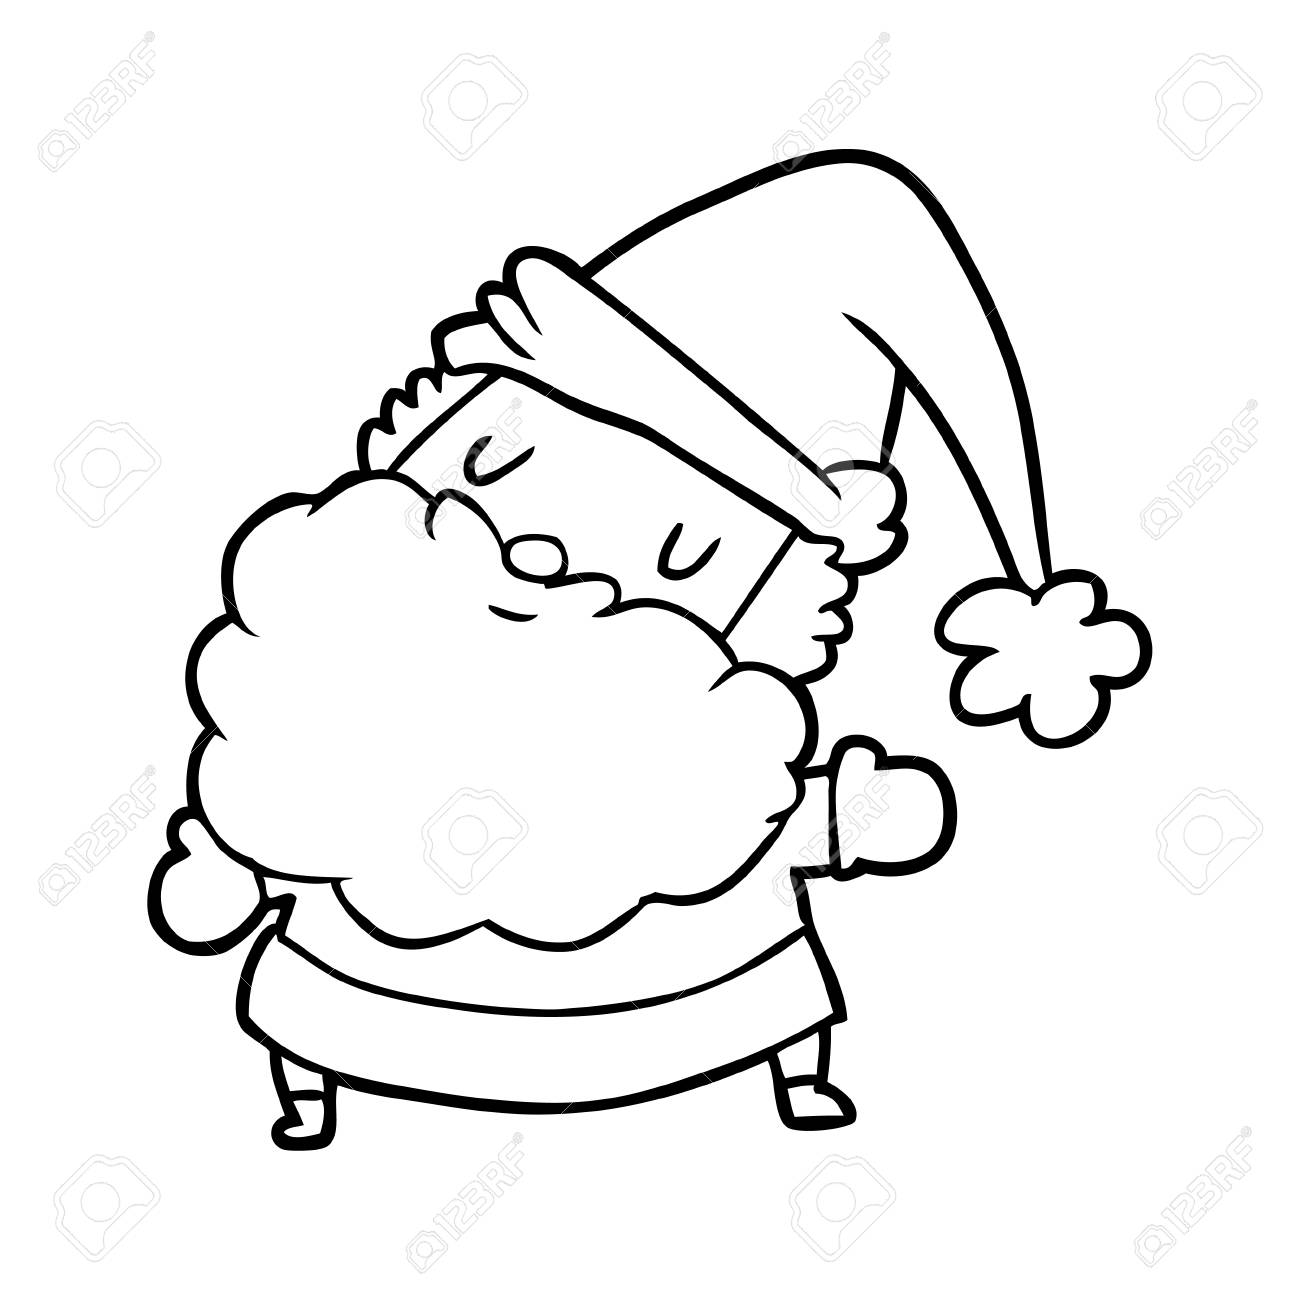 line drawing of a santa claus royalty free cliparts vectors and stock illustration image 94923591 123rf com